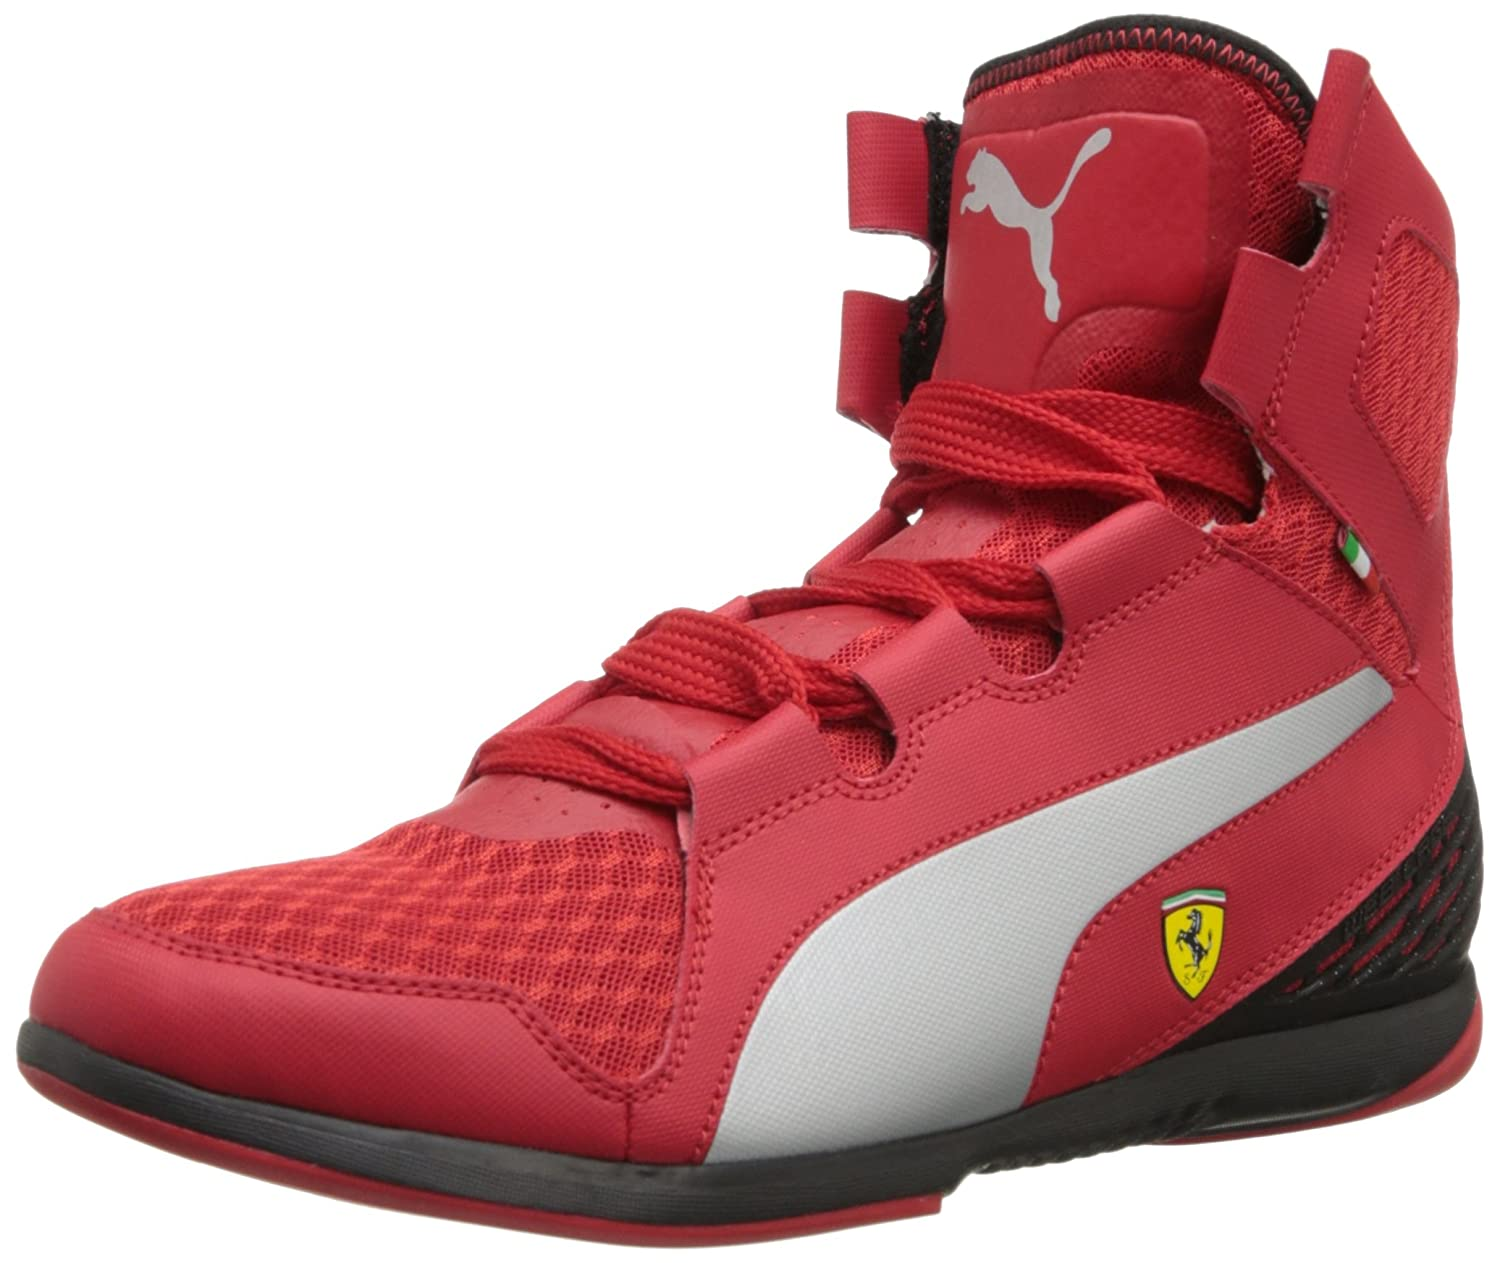 power puma driving the light sfferrari white sf price men low ferrari racing violetwhite violet internet discount mall vdrspik p shoes grey